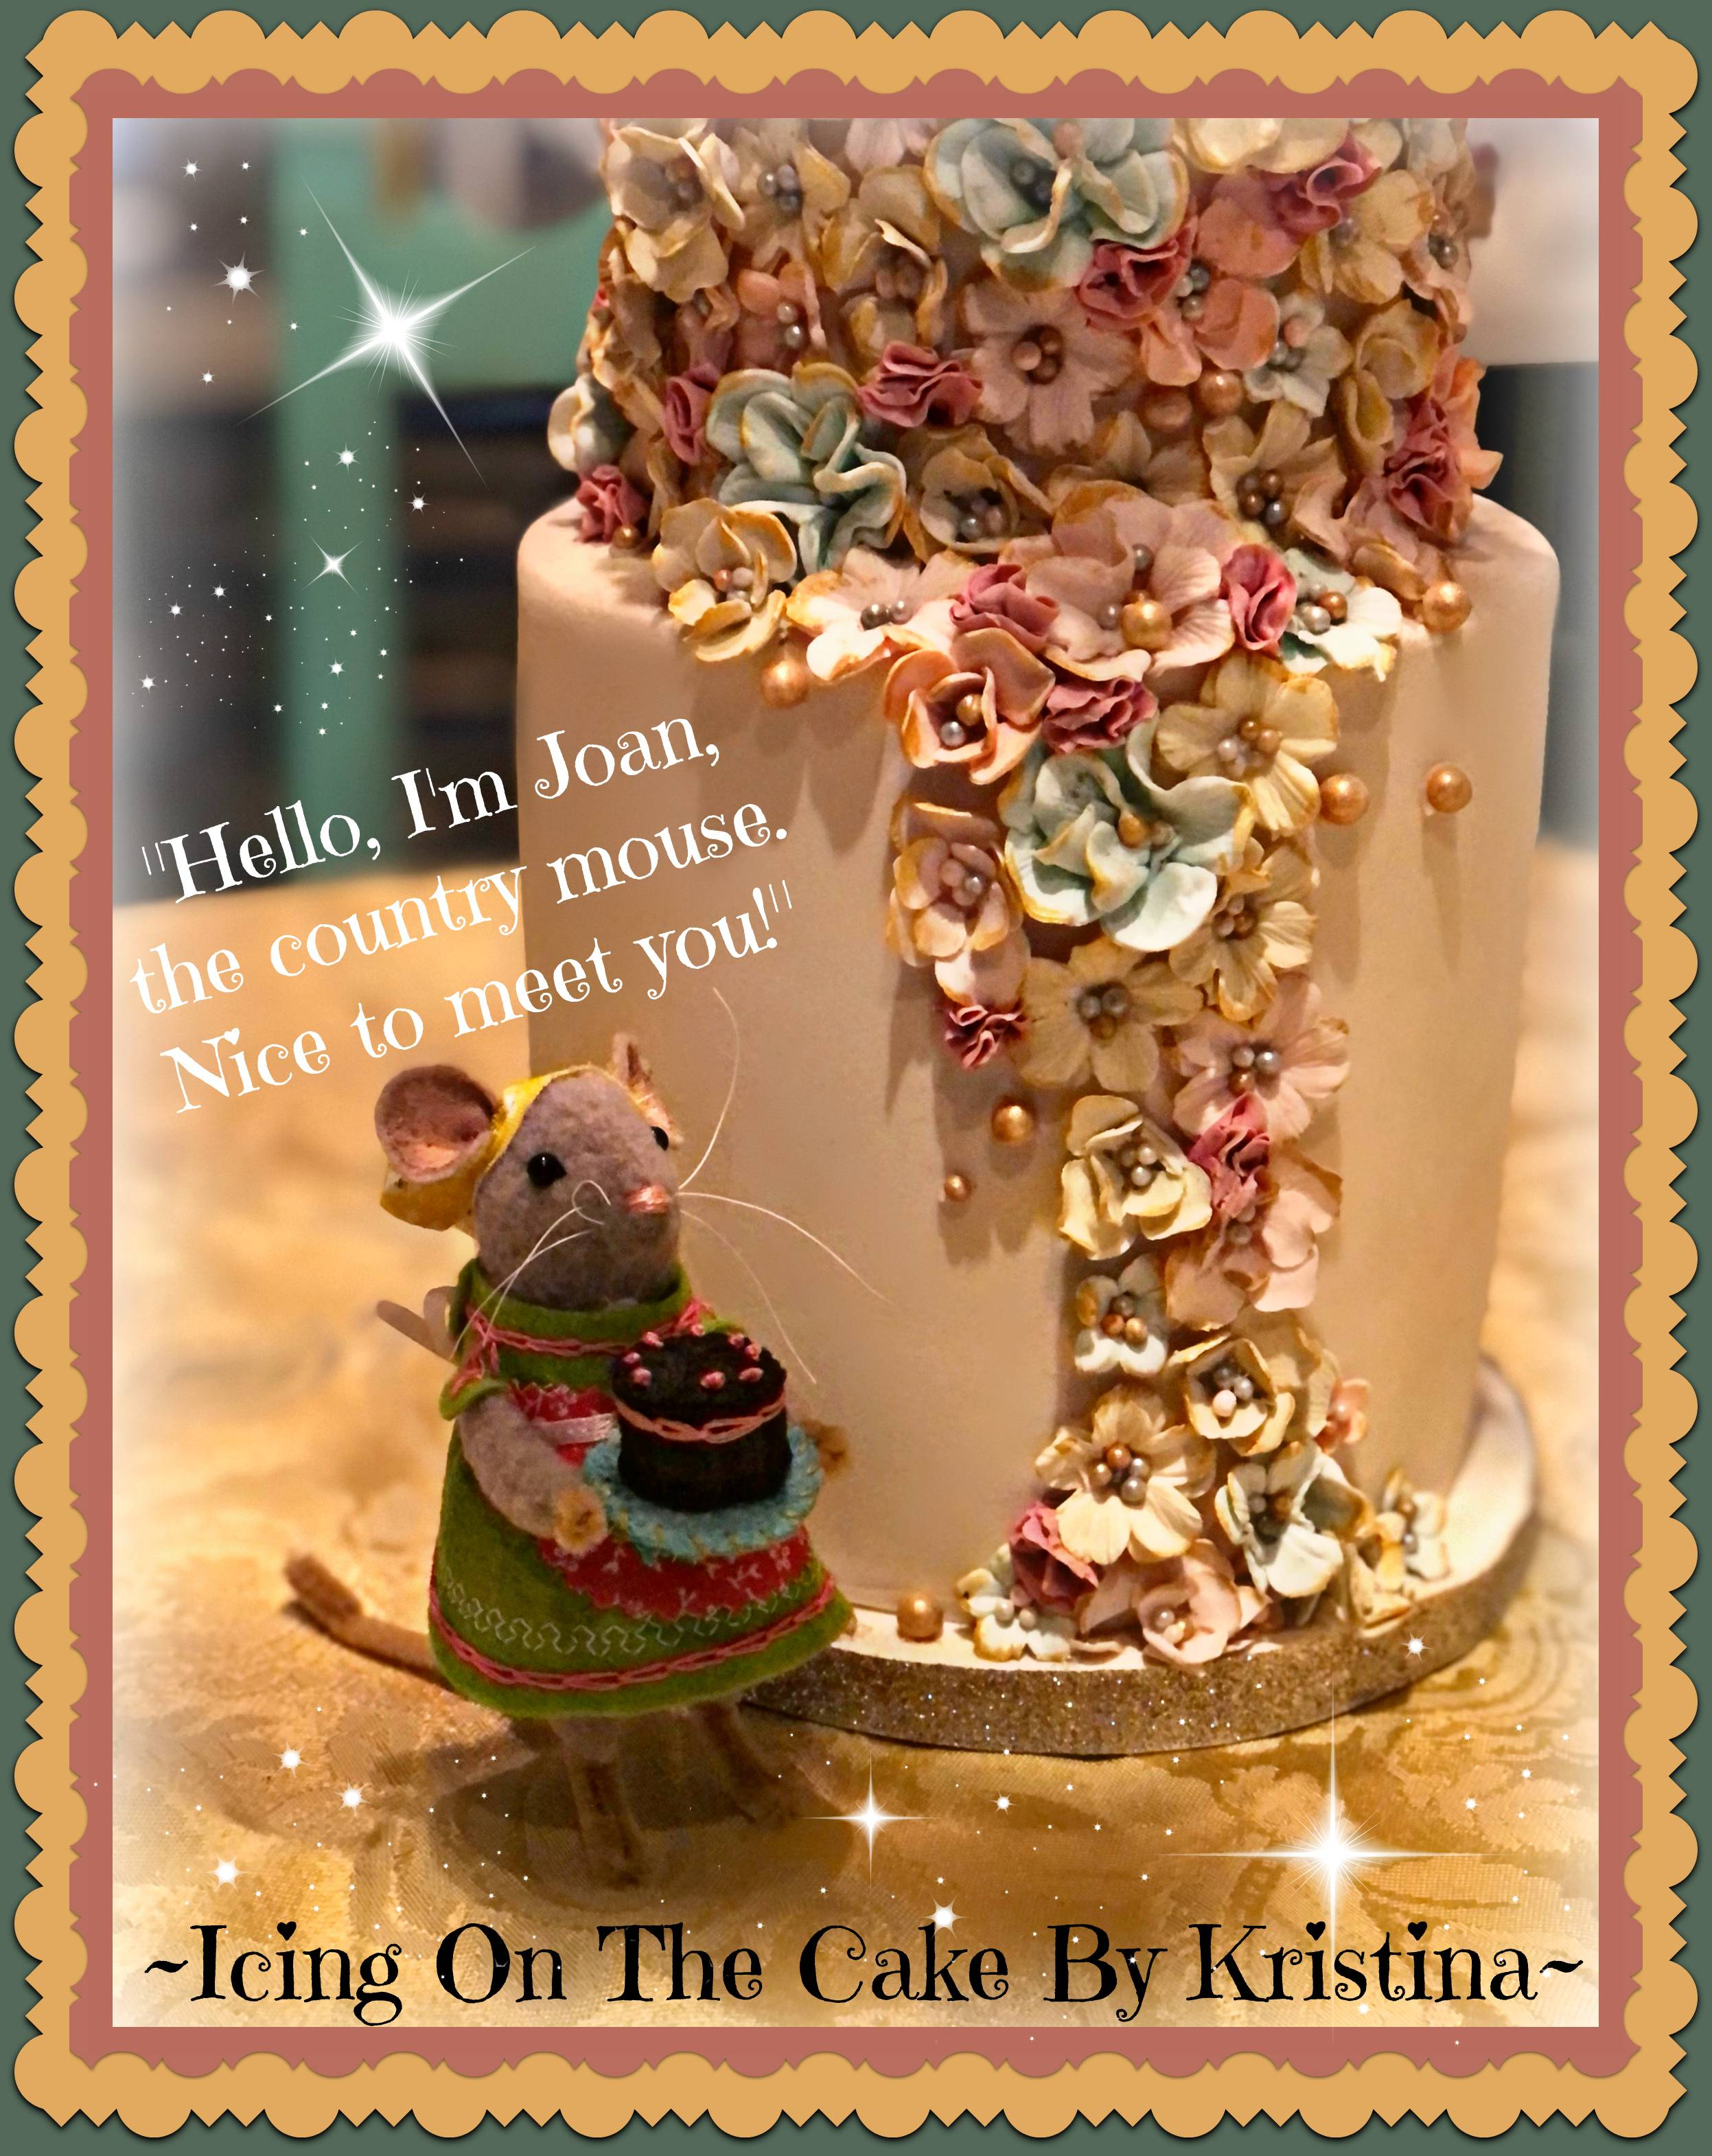 Welcome Our Newest and smallest helper to Icing On The Cake By Kristina!